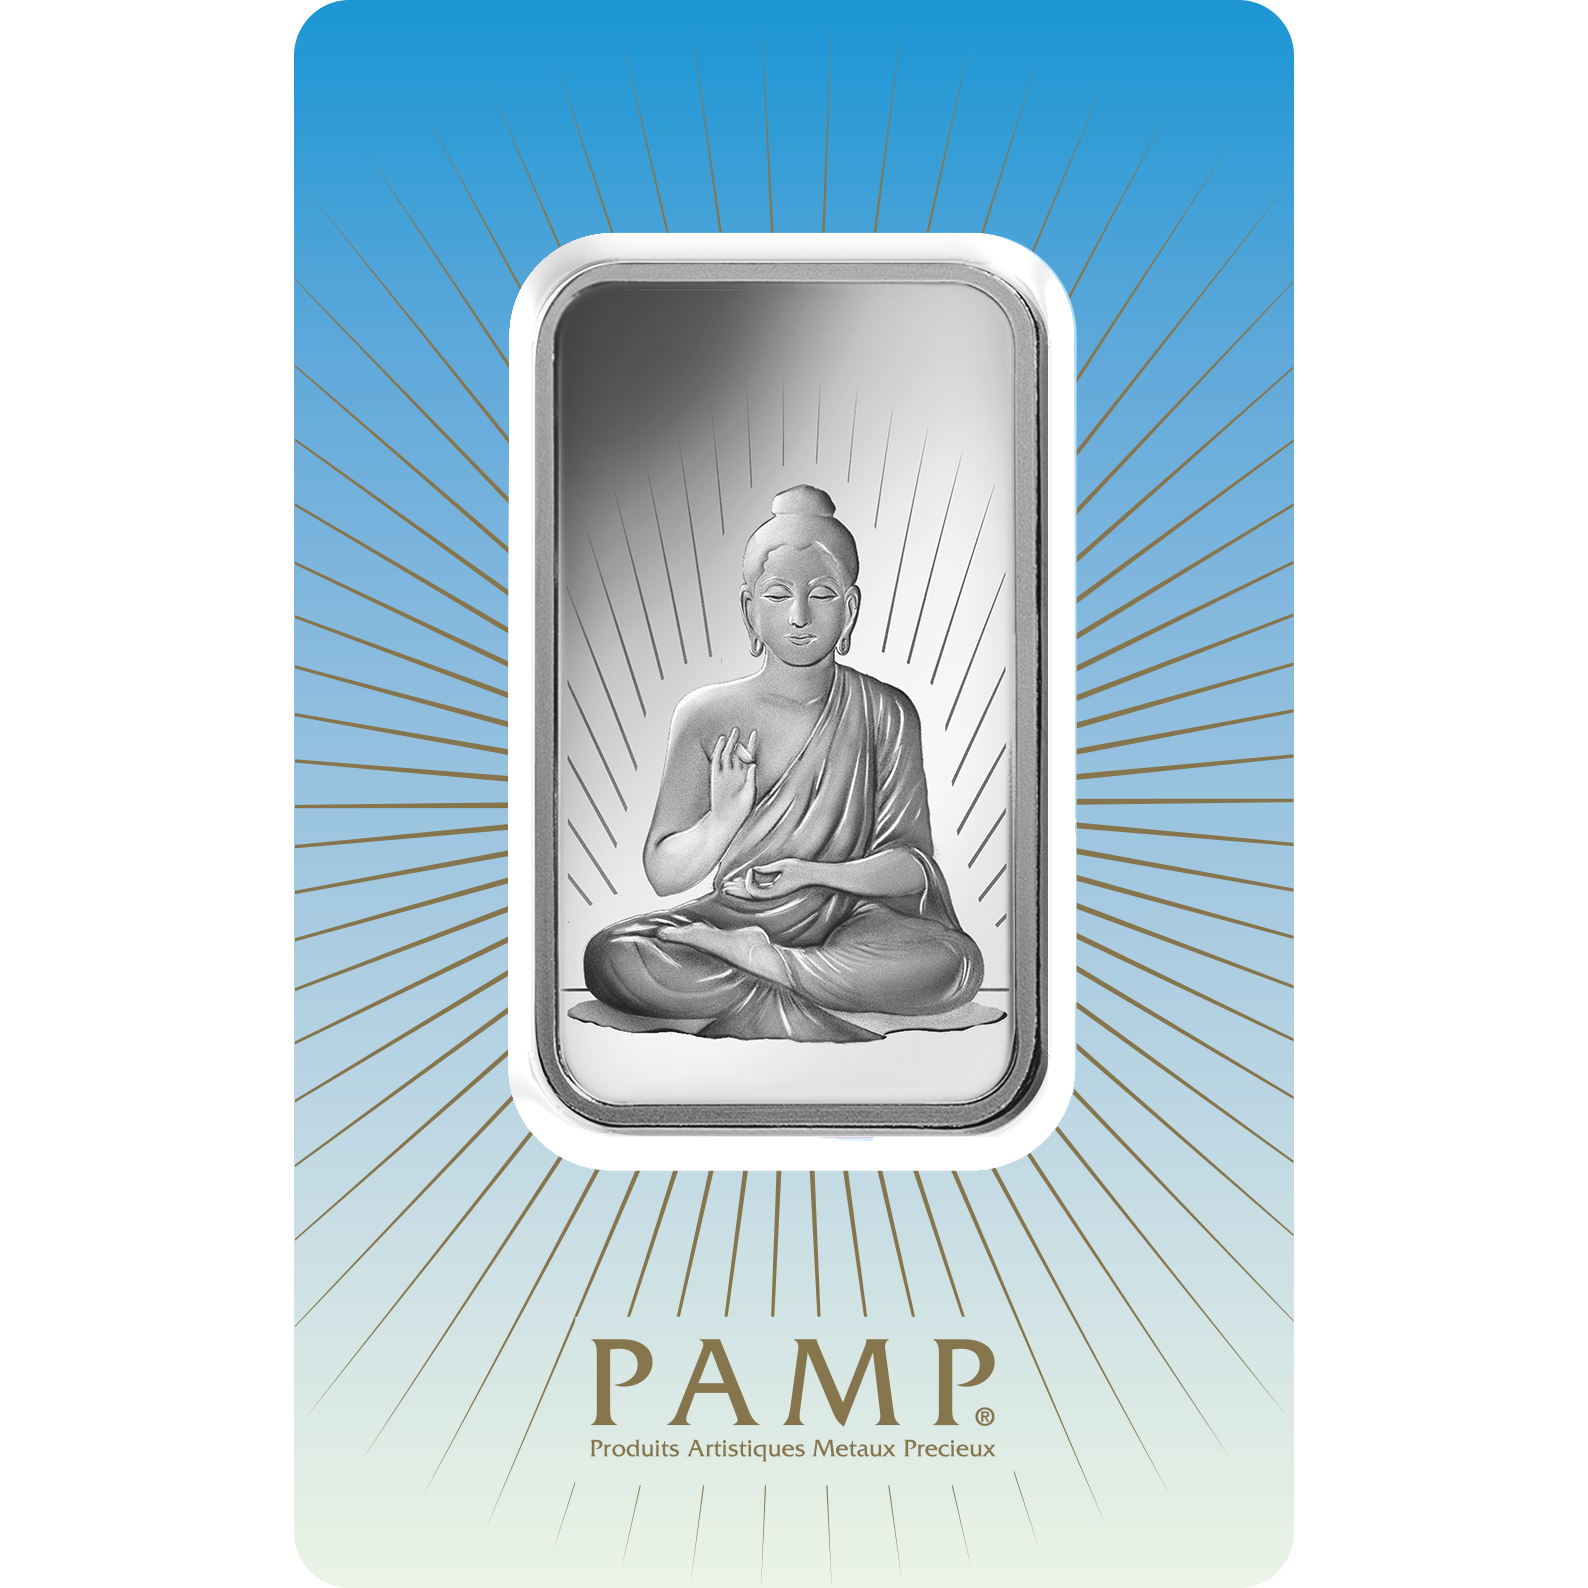 1 oncia lingottino d'argento puro 999.0 - PAMP Suisse Buddha